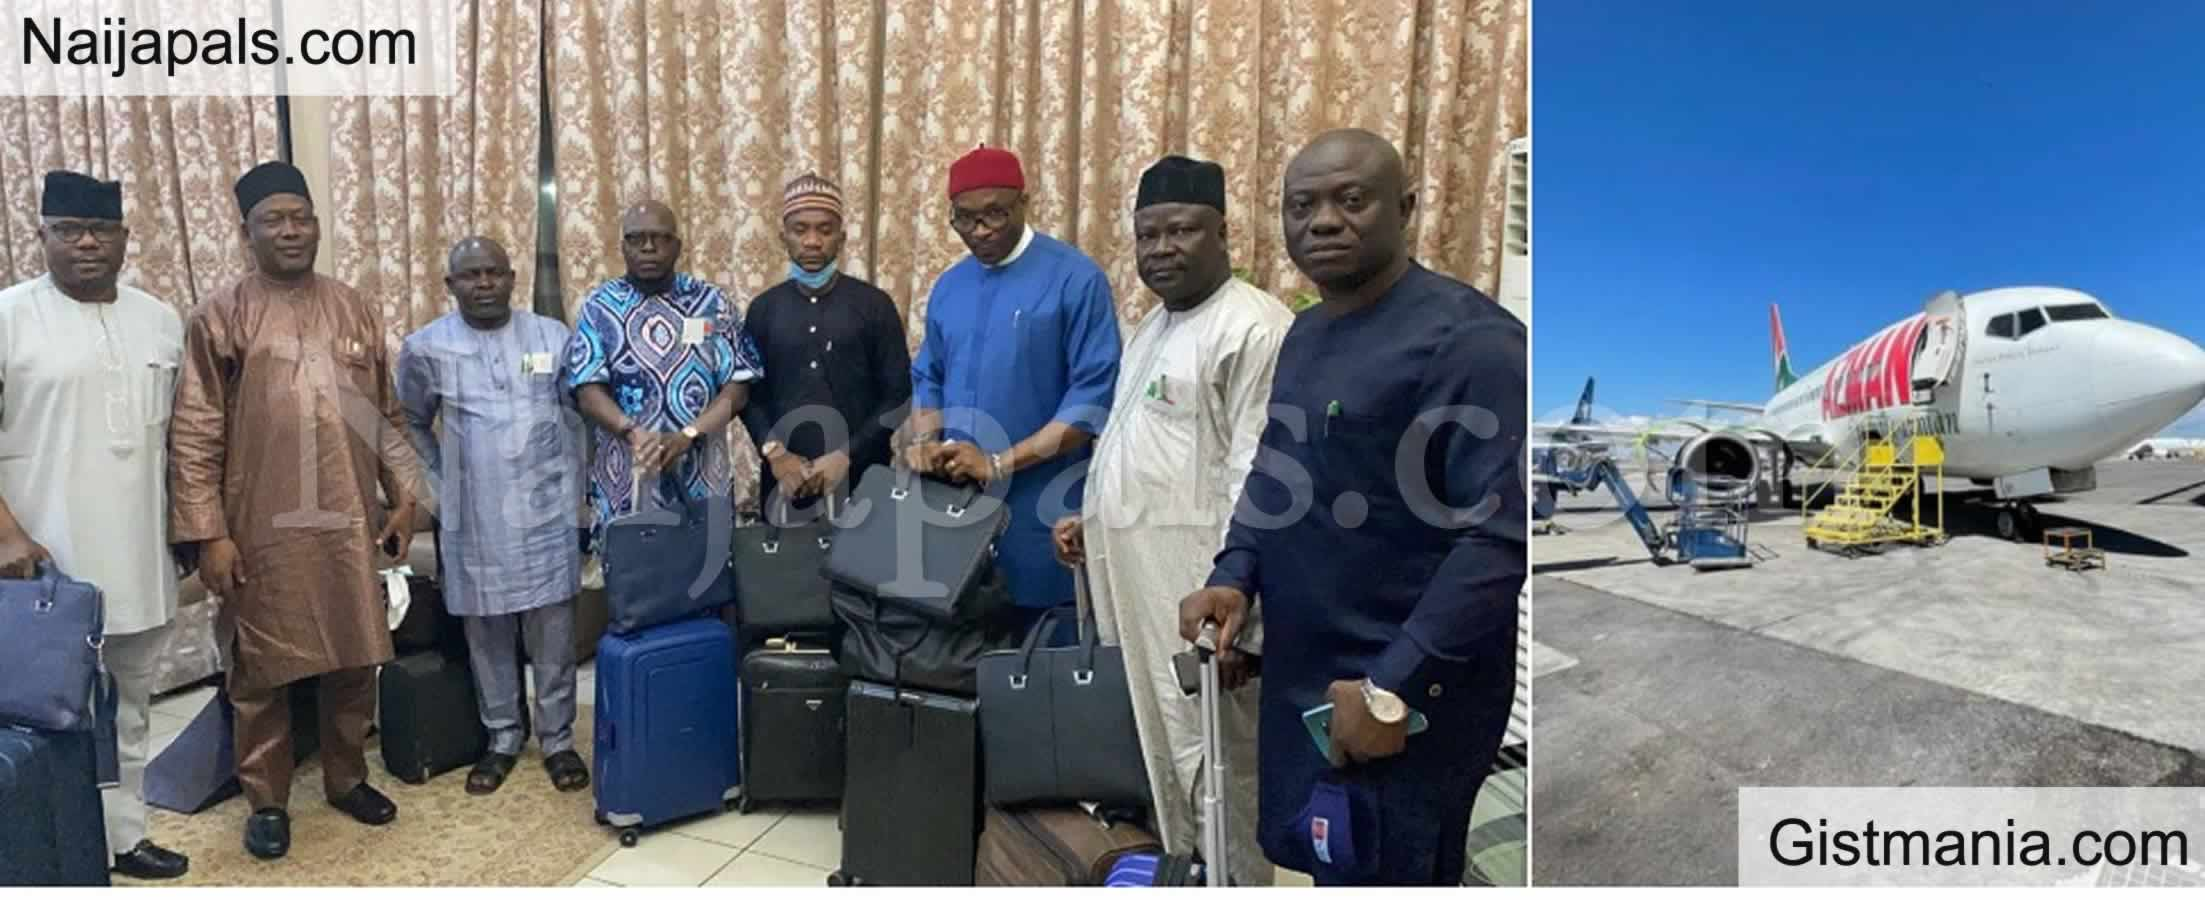 <img alt='.' class='lazyload' data-src='https://img.gistmania.com/emot/news.gif' /> <b>Nigerian Lawmakers Left Stranded By Absconding Airline Officials In Kano</b>